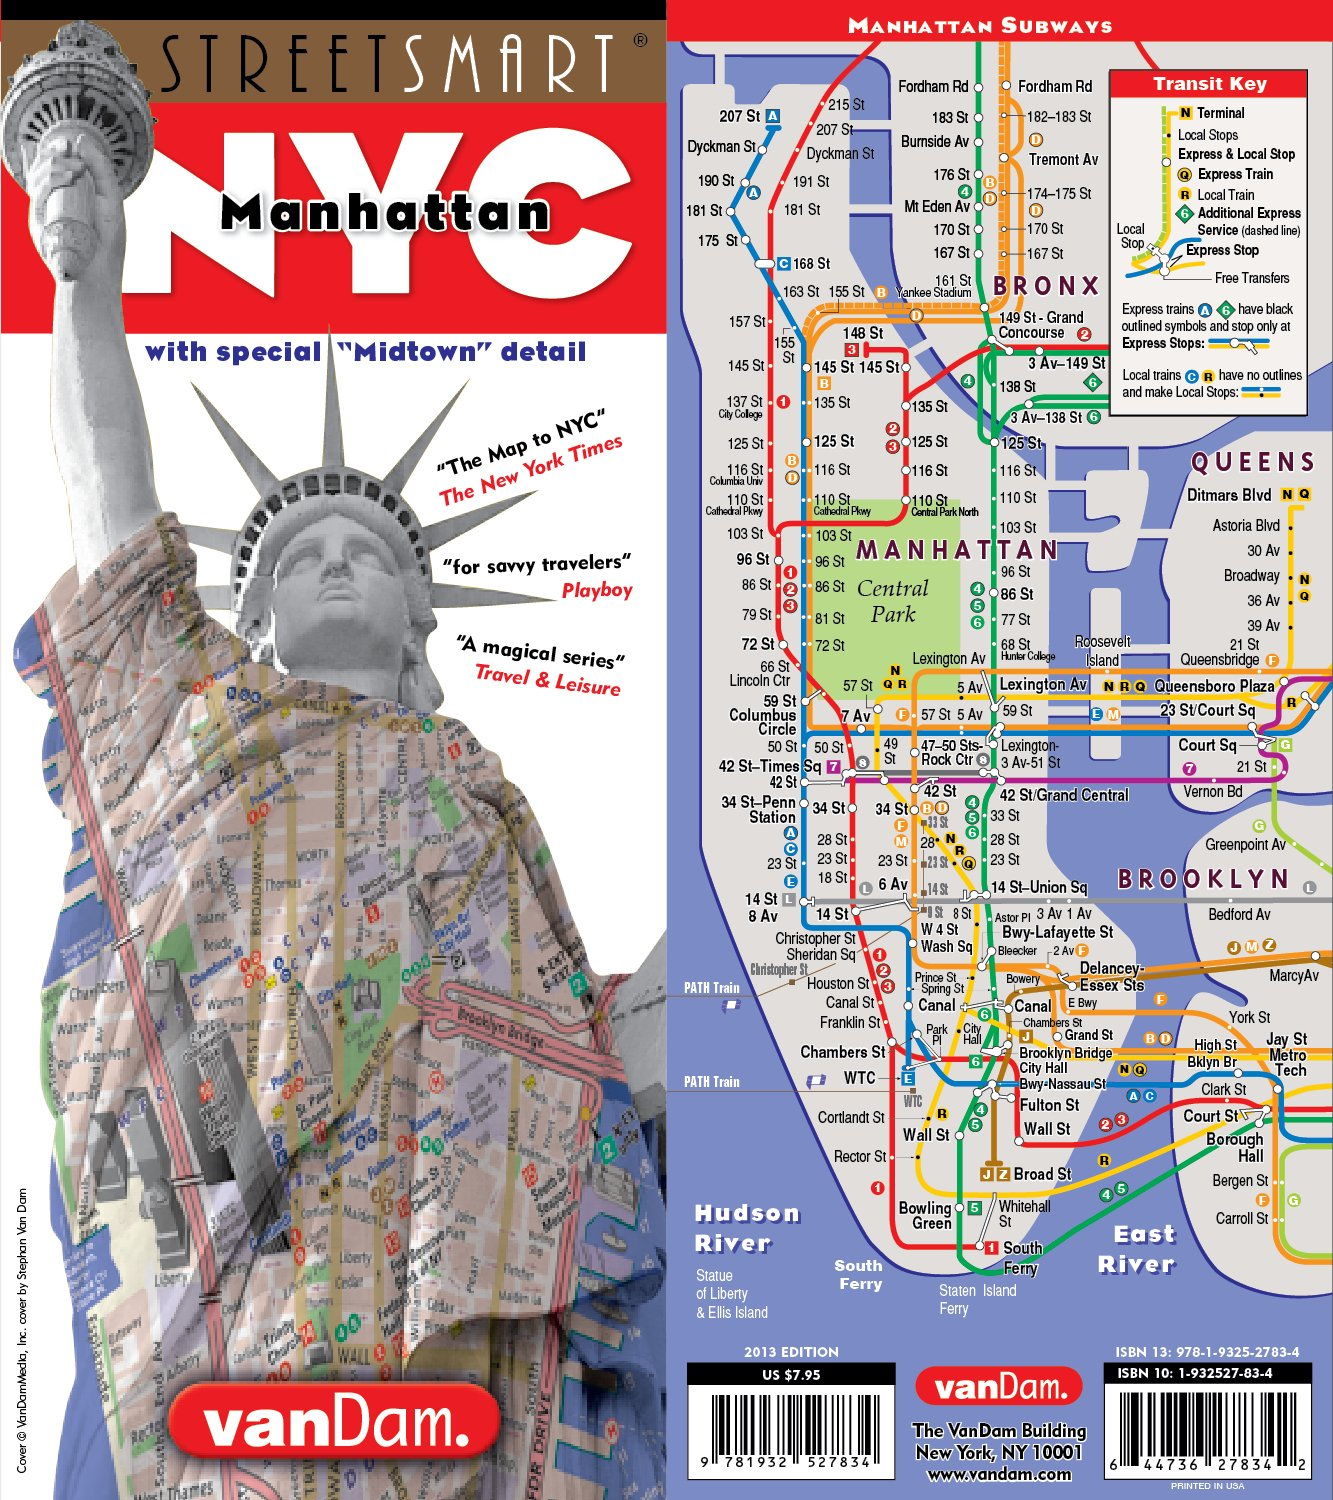 StreetSmart NYC Map Midtown Edition by VanDam-Laminated ... on map of amtrak train, map of new york city, new york sites and attractions, lower manhattan map and attractions, map of manhatten, map of east coast of usa with states, rome metro map with attractions, midtown manhattan attractions, central park attractions, dc metro map with attractions, san francisco map with attractions, porto map with attractions, map of things to do in nyc, ny city map with attractions, nyc attractions, map of mahattan, new york map with attractions, manhattan tourist attractions, map manhattan printable tourist stops, staten island attractions,